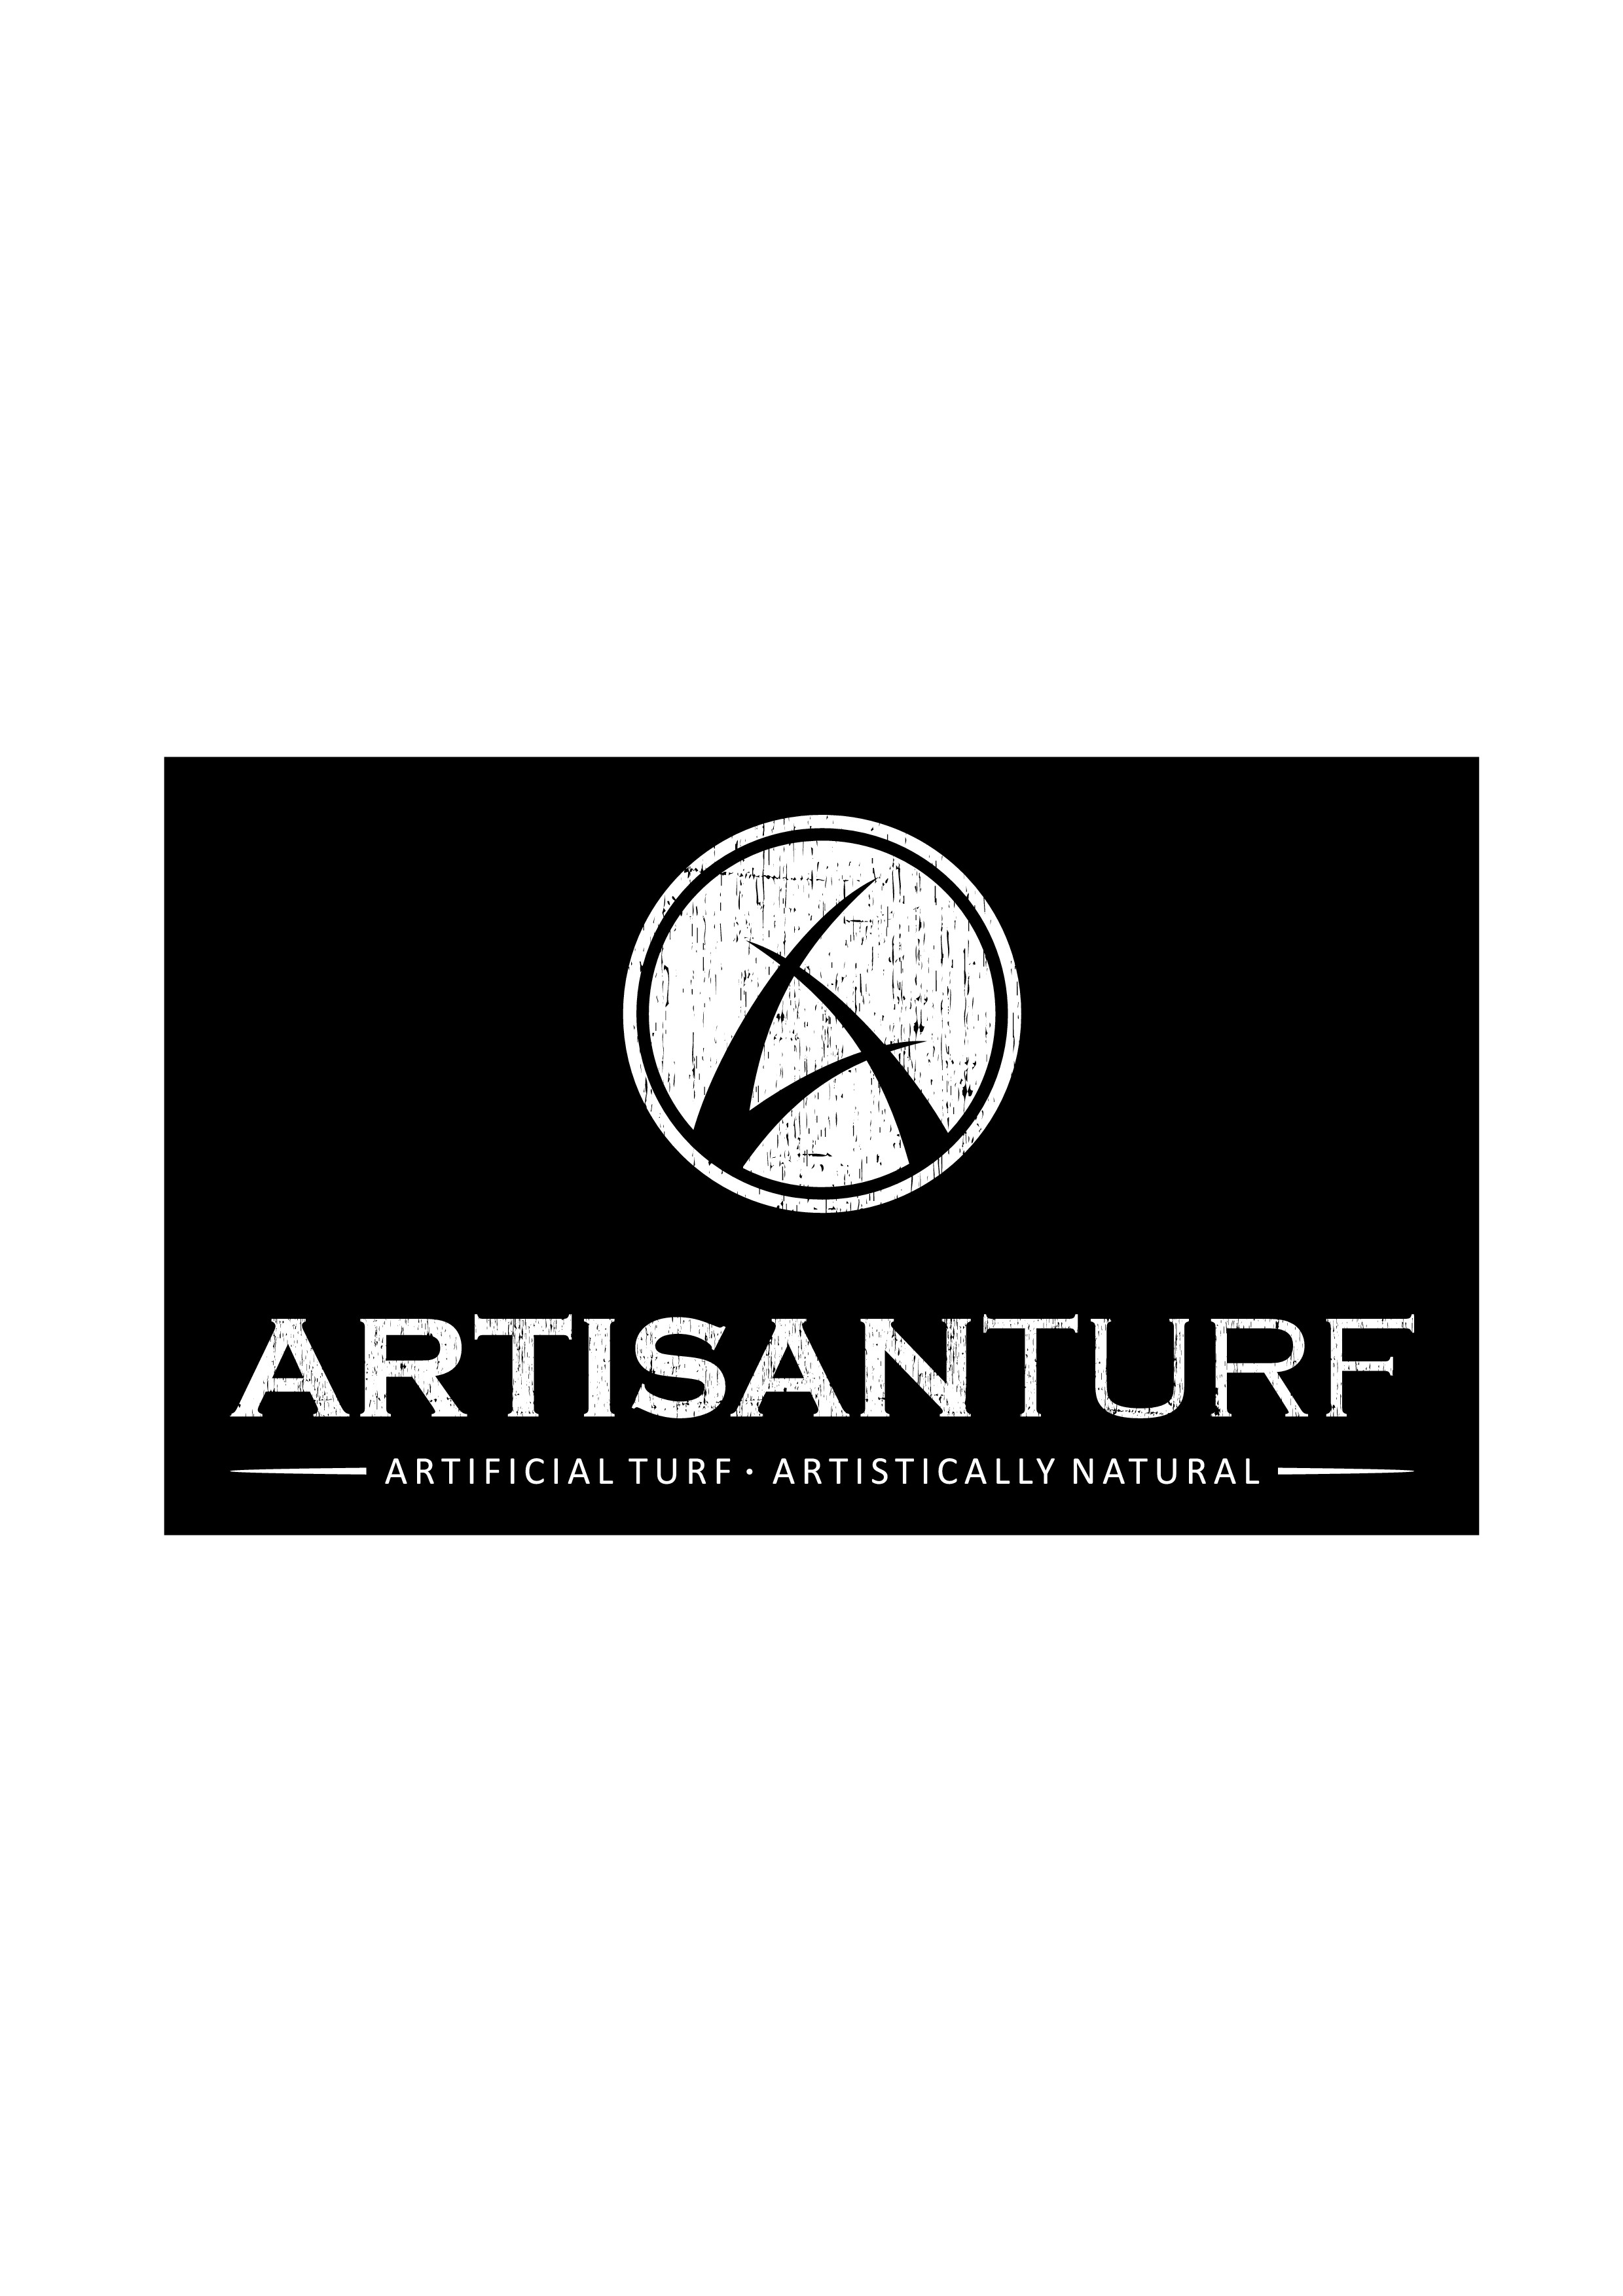 Create a modern artistic (brand) identity for an ARTIFICIAL TURF company.